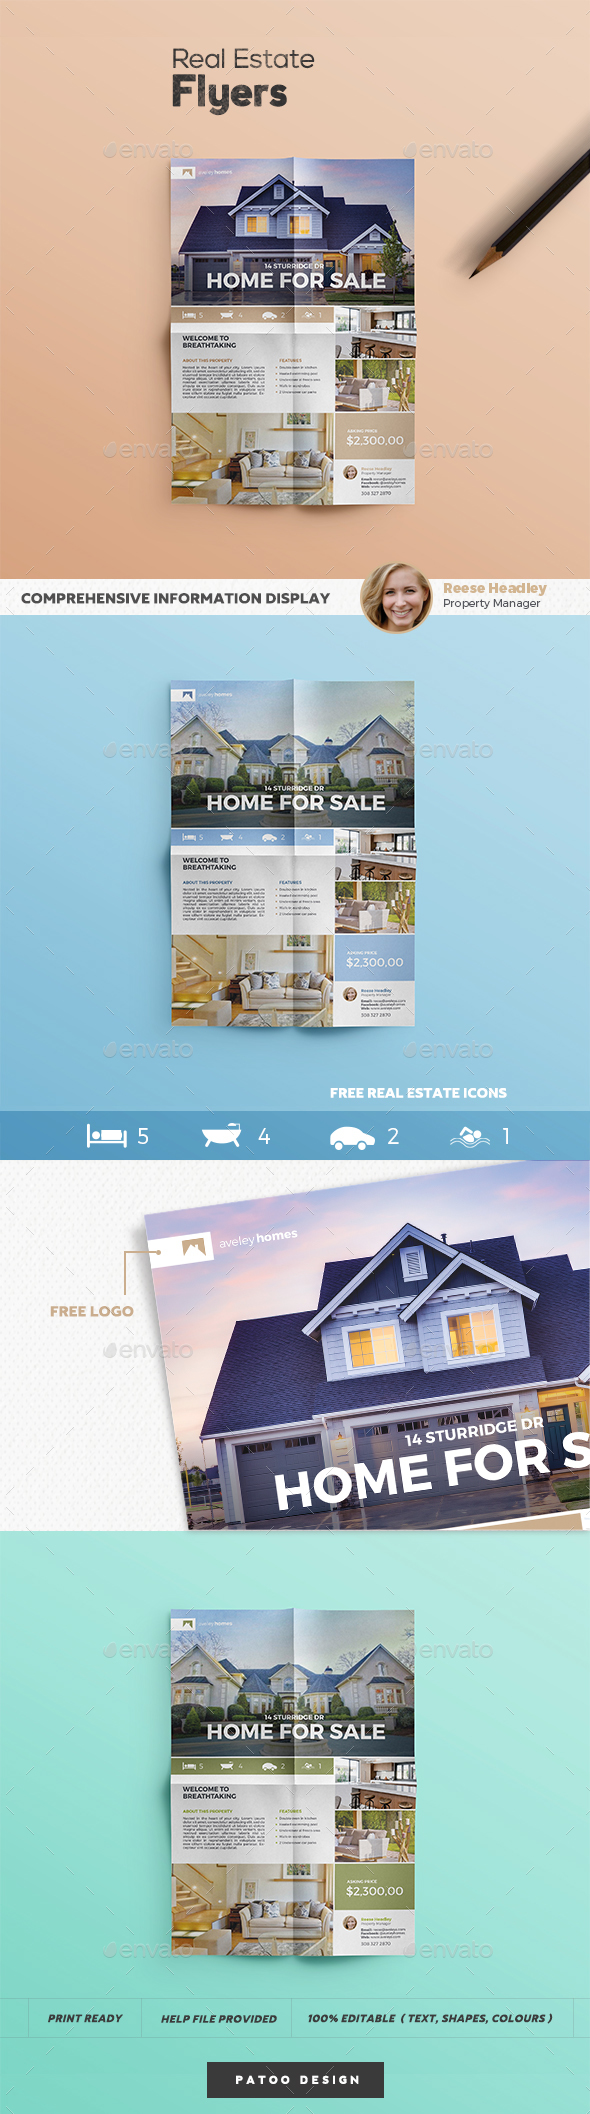 Real Estate Flyer Template 1 - Commerce Flyers